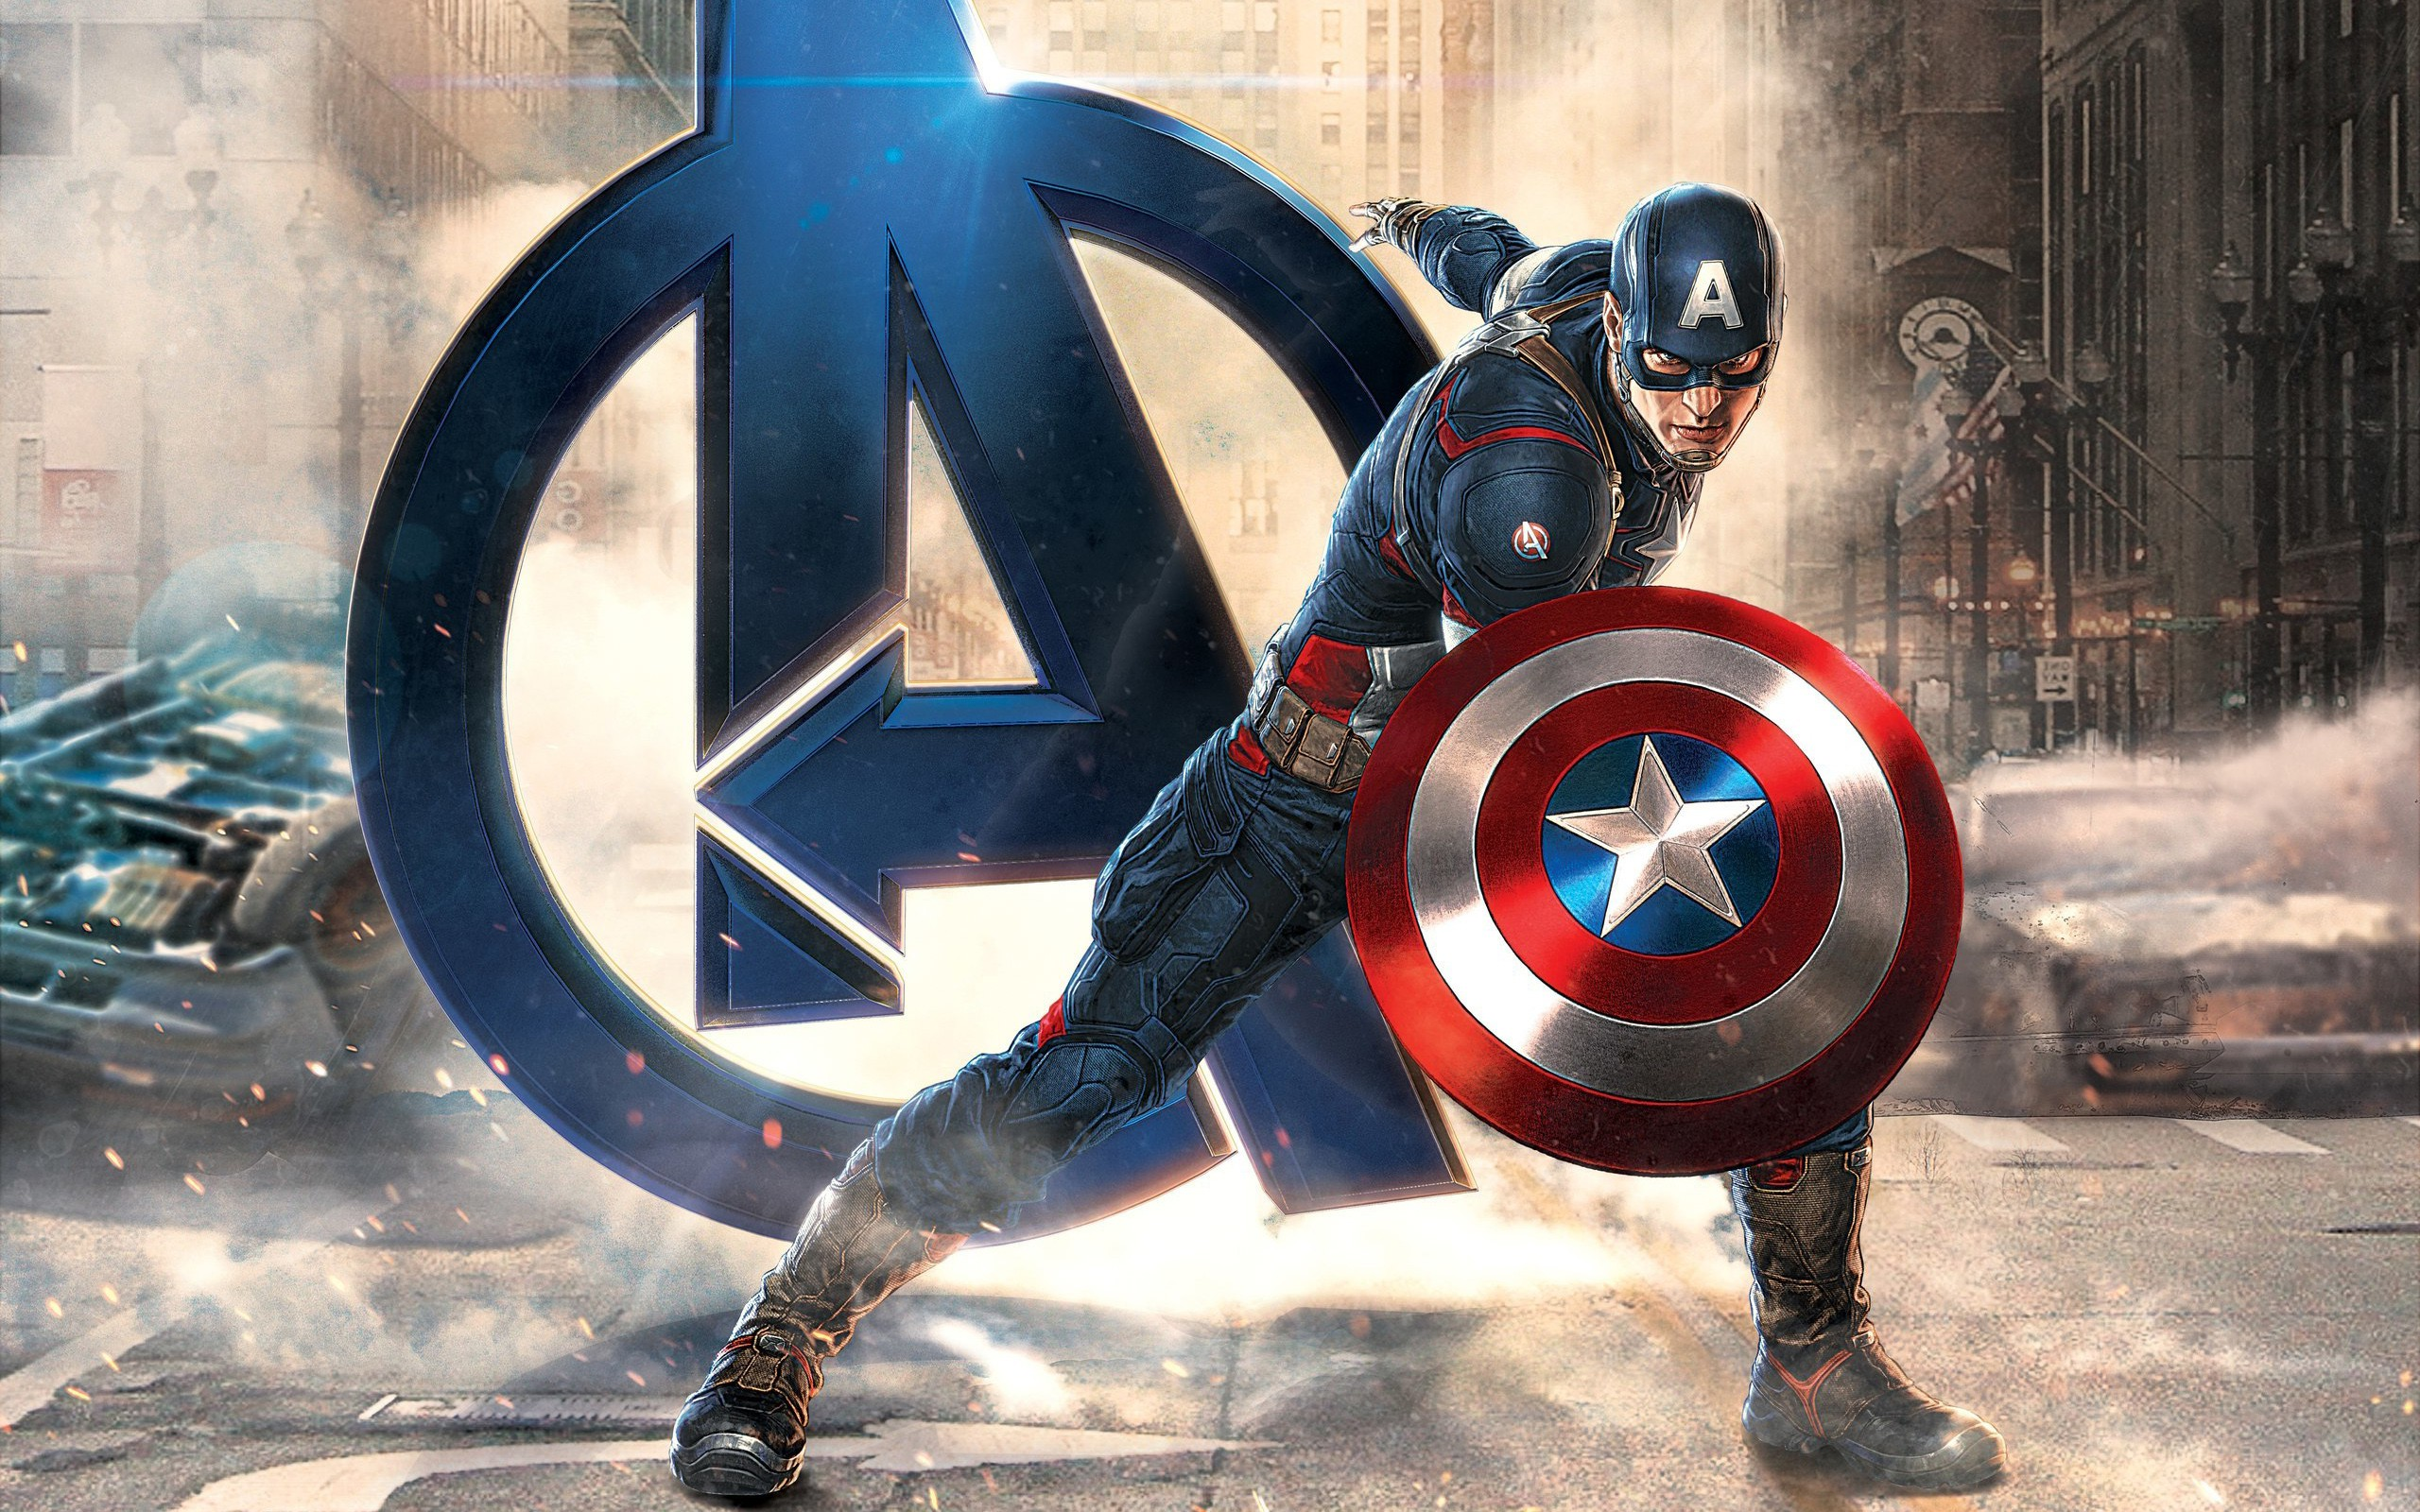 Good Wallpaper High Resolution Captain America - captain-america-avengers  Image_77226.jpg